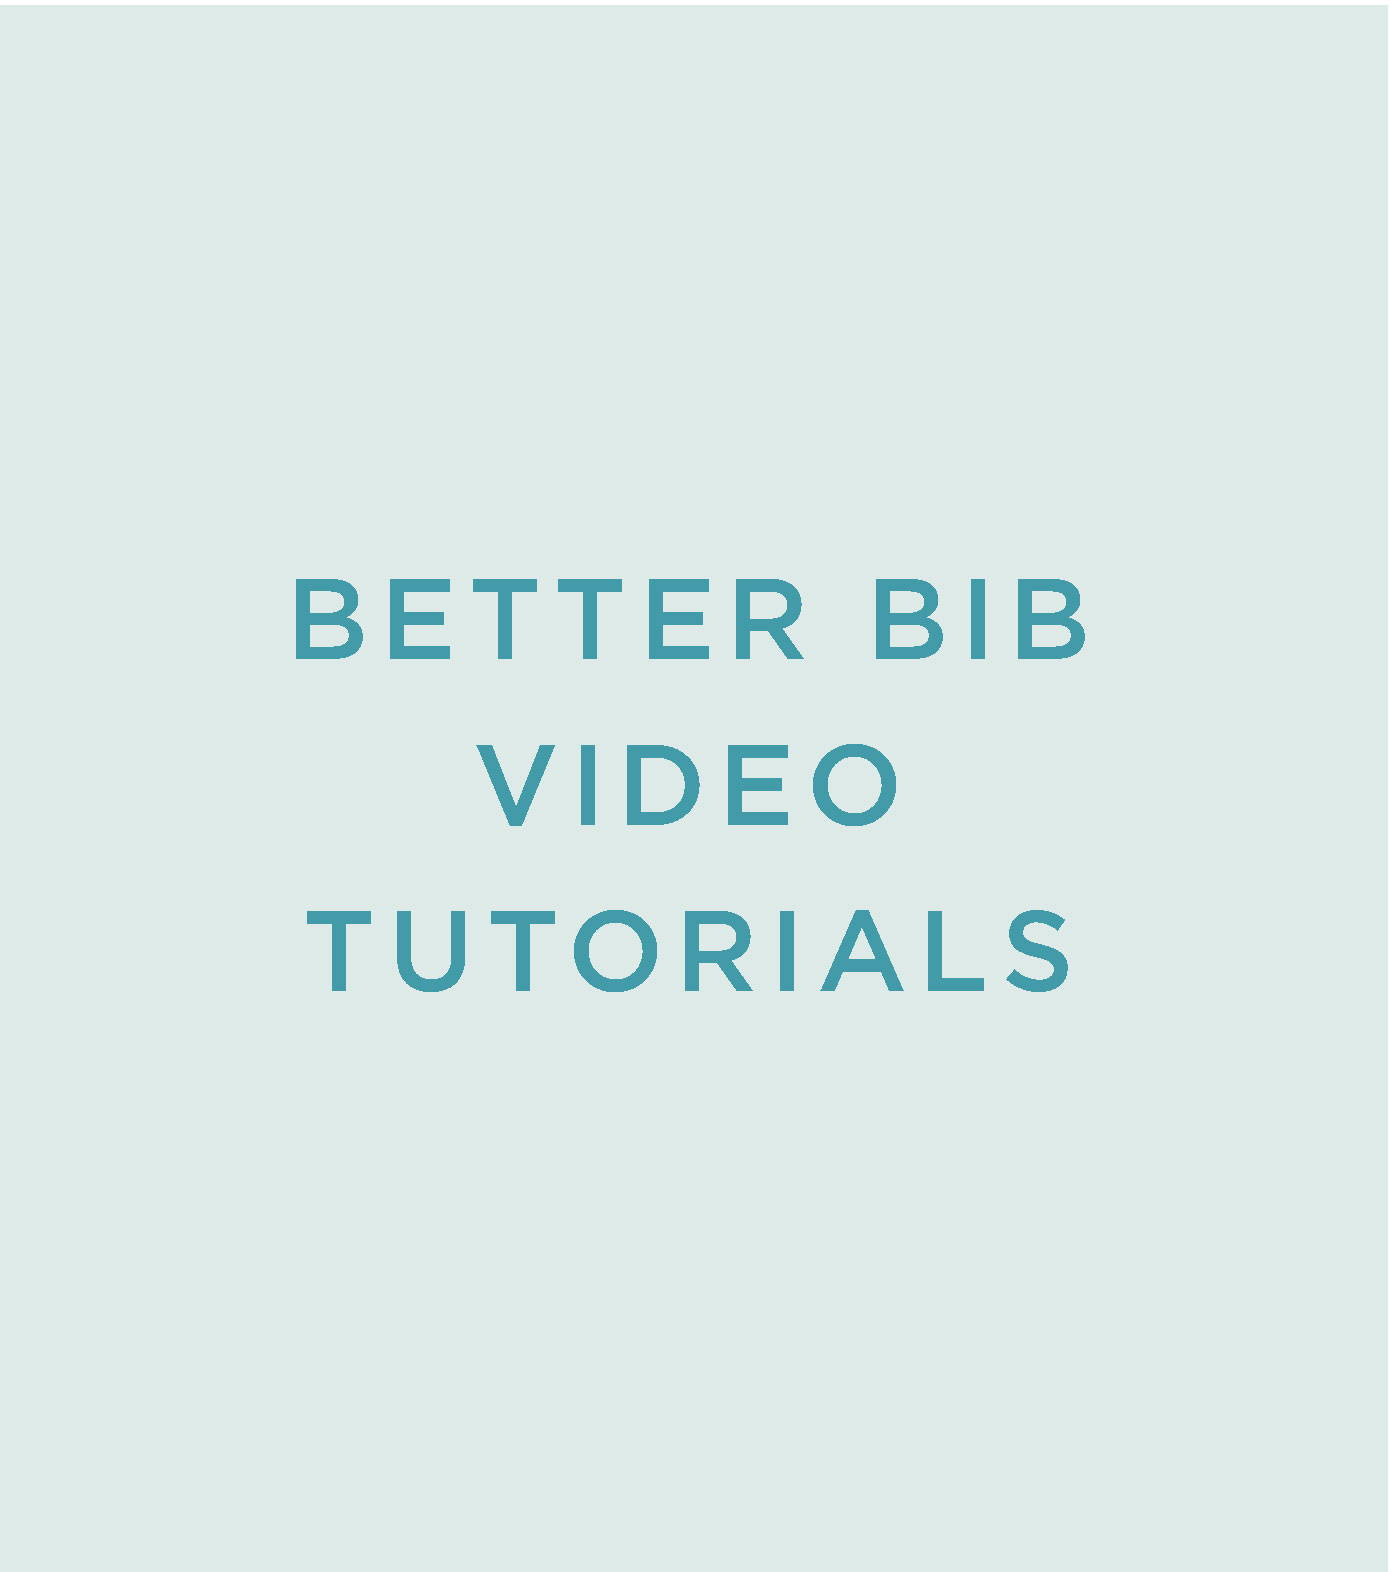 better bib video tutorials